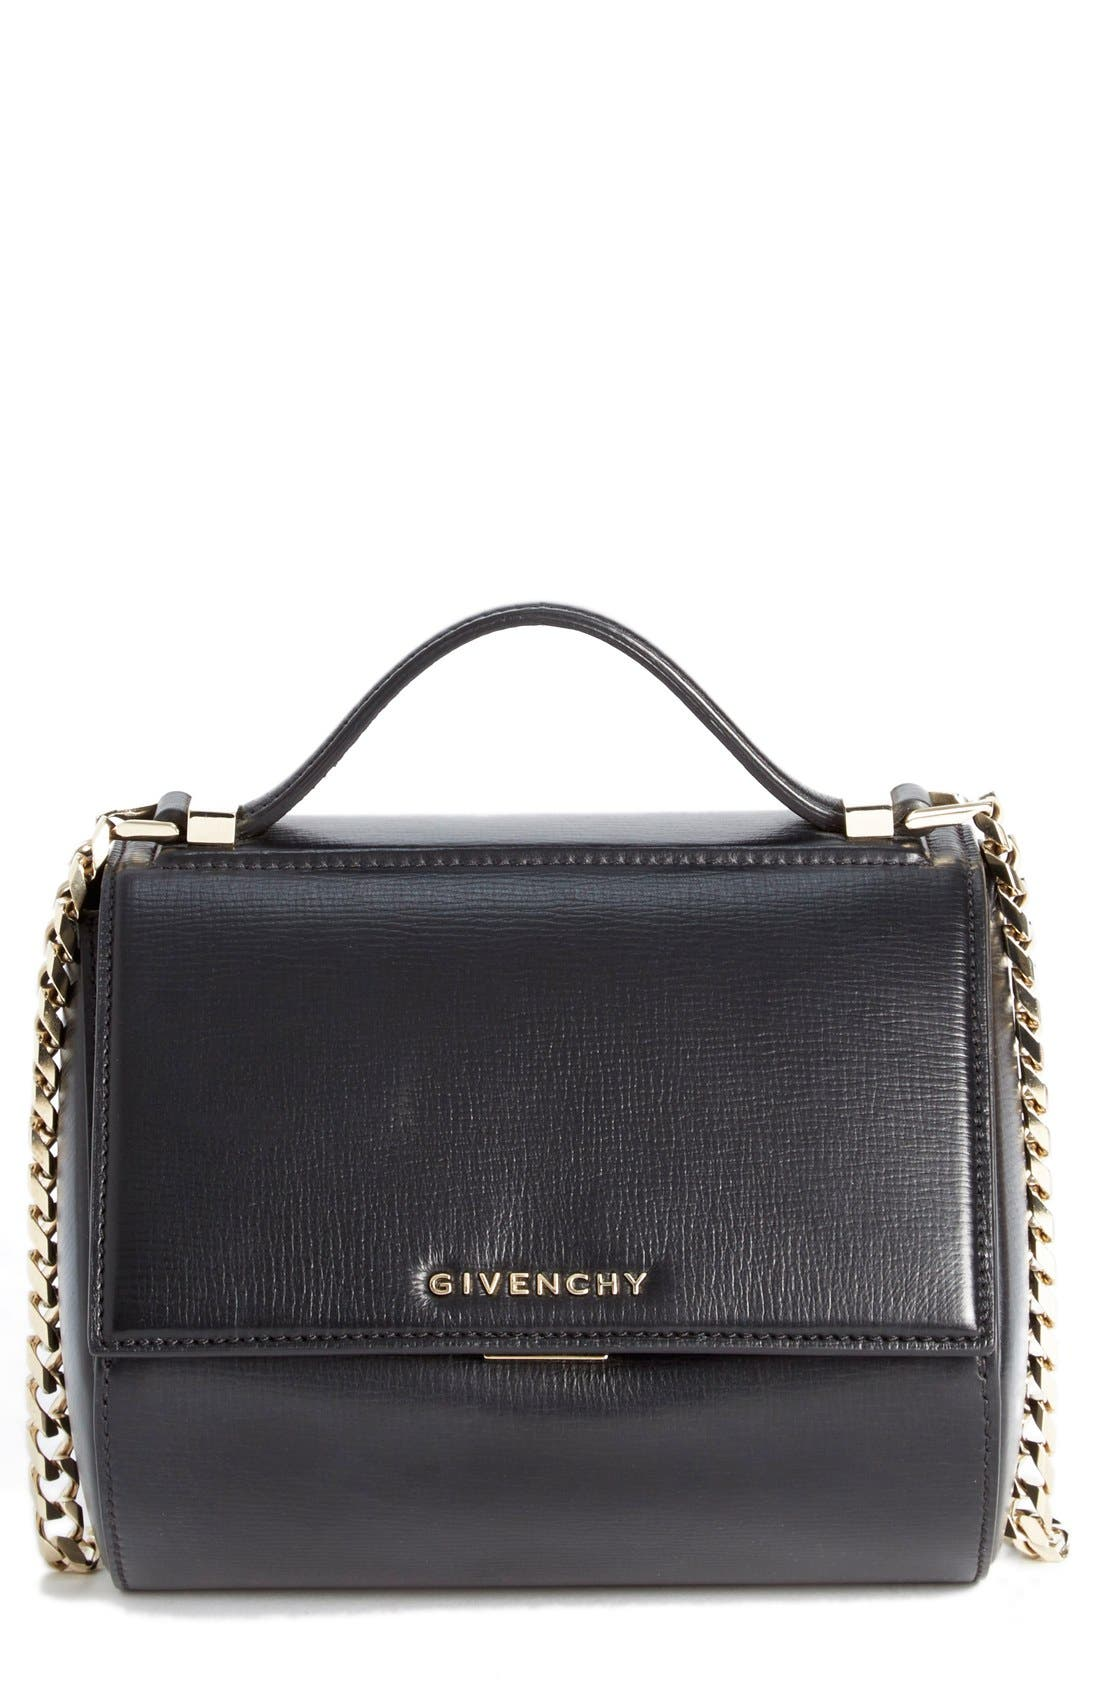 Alternate Image 1 Selected - Givenchy 'Mini Pandora Box - Palma' Leather Shoulder Bag